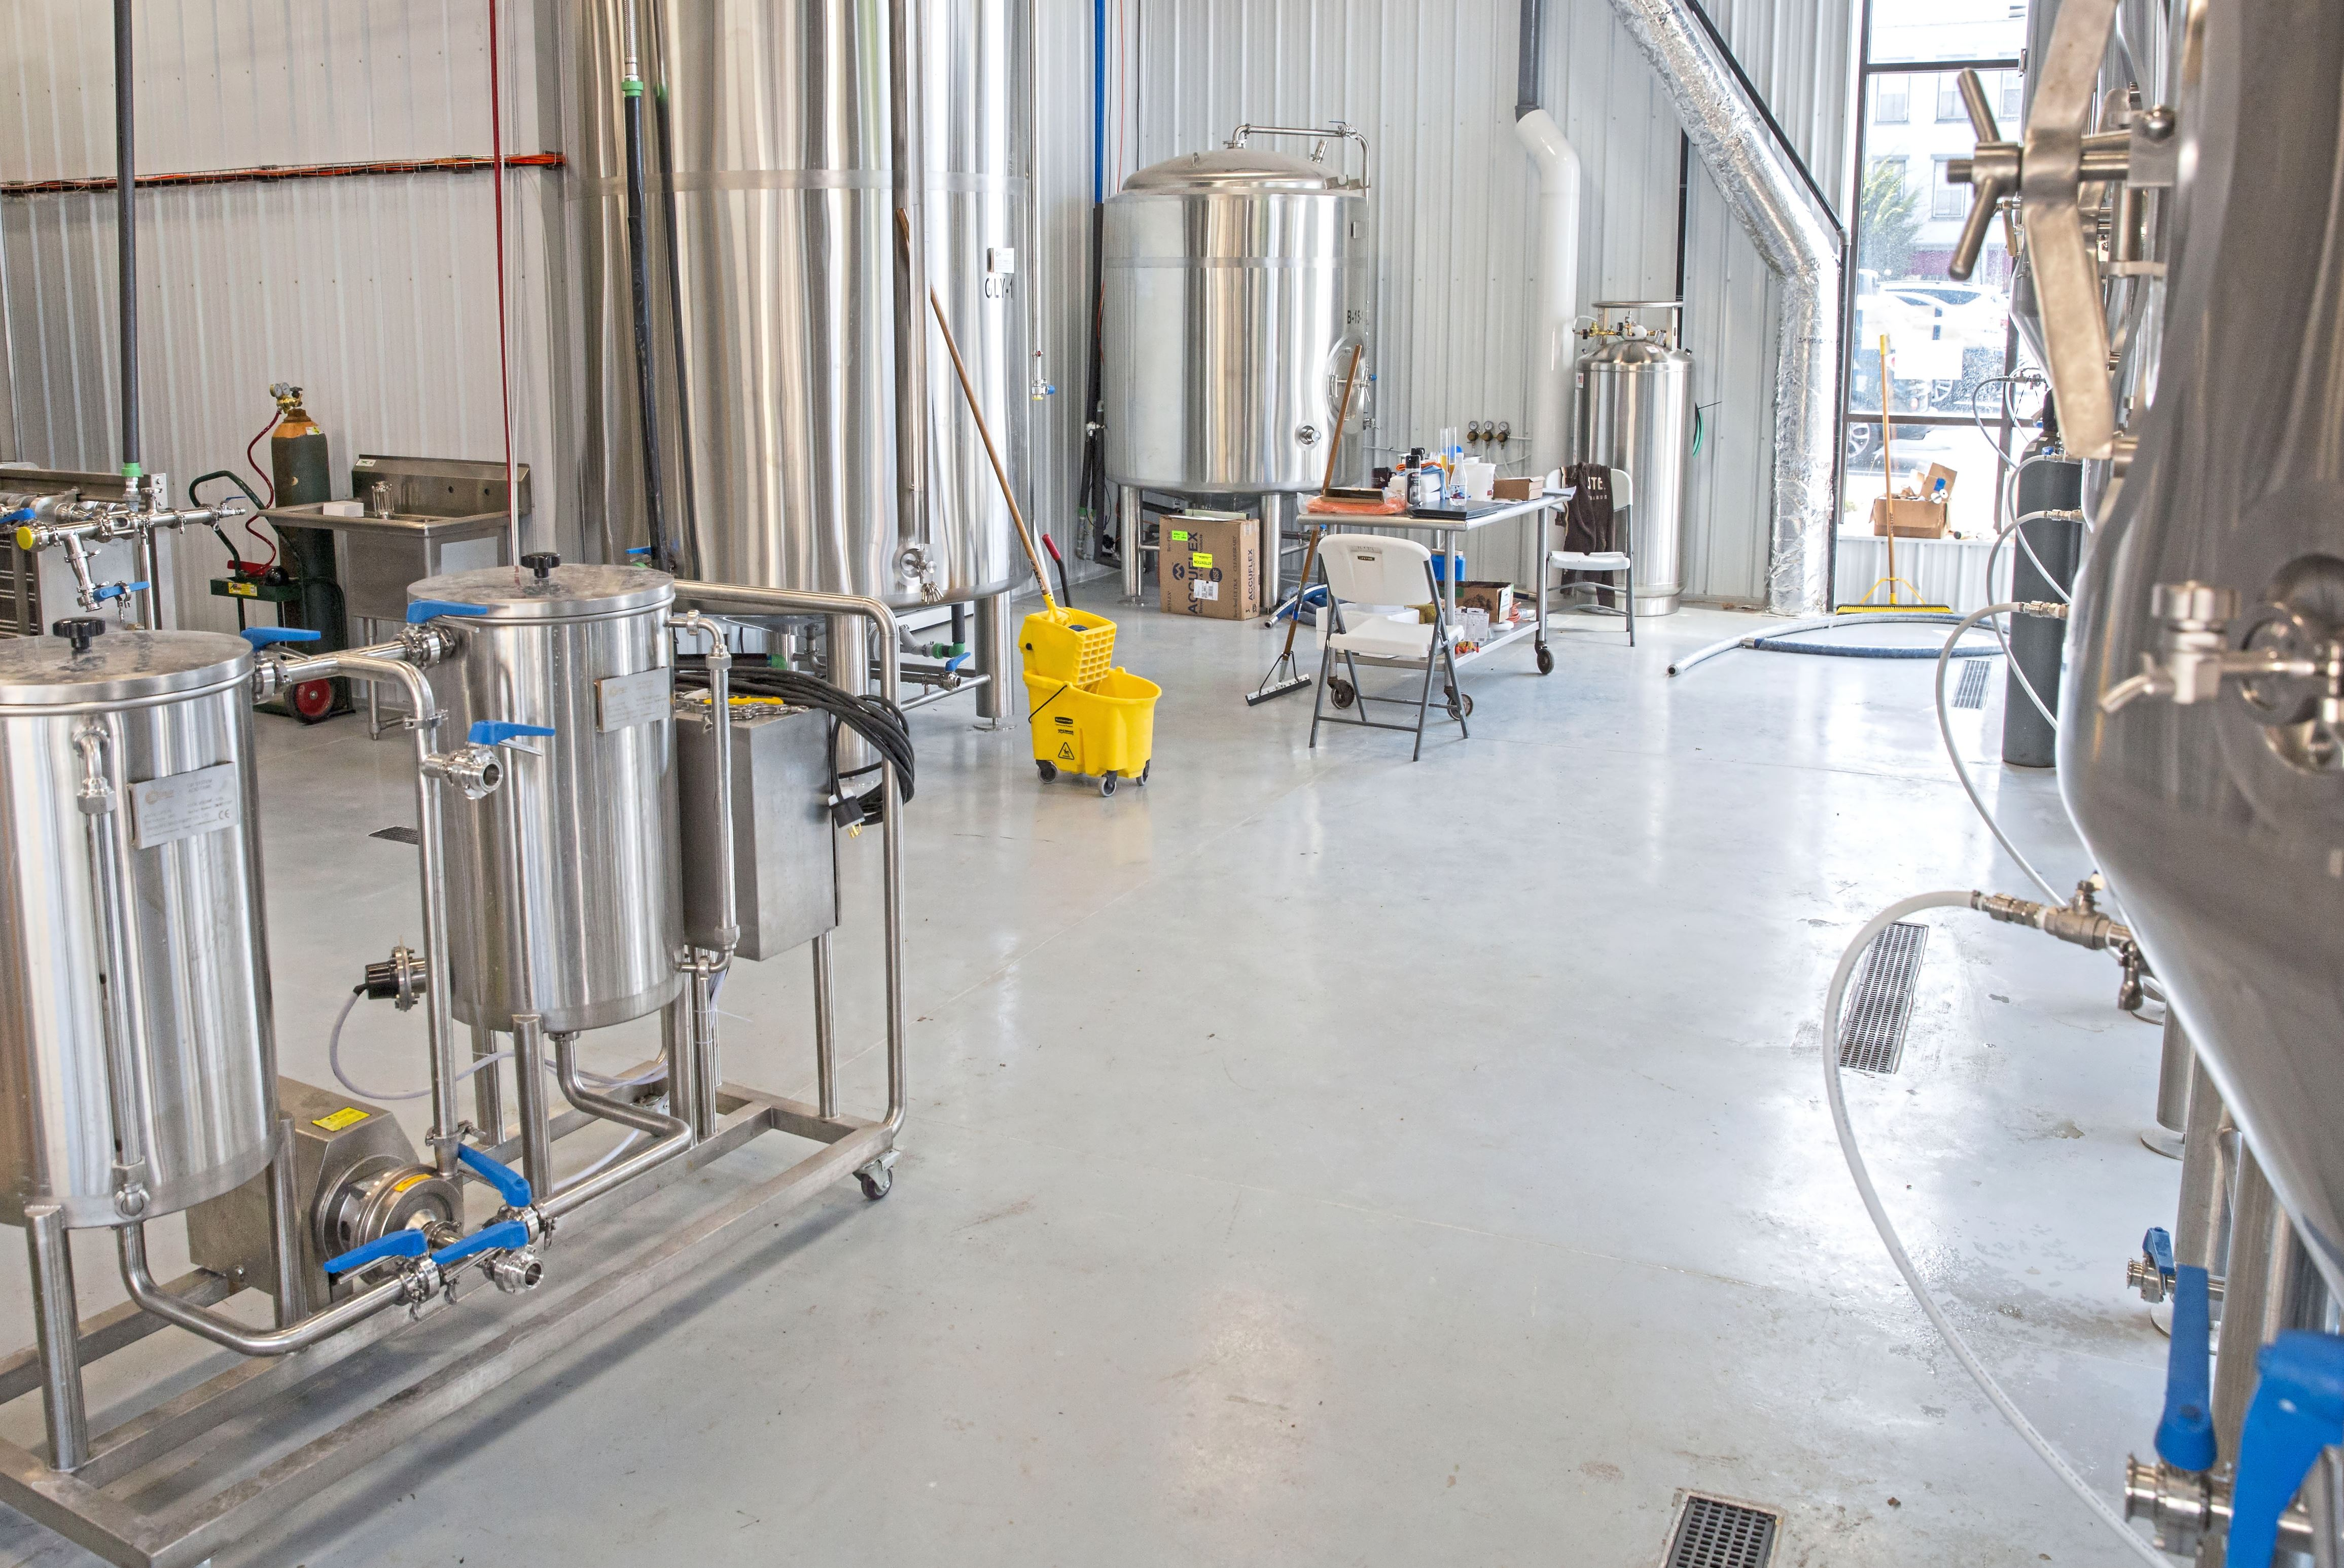 20170830acWashingtonBrewCo-05-1 One of the main rooms that has four 15 barrels of fermenters and two 30 barrel fermenters that are described as huge kegs at the Washington Brewing Co. The Washington Brewing Co. is set to open on Sept. 8 in Washington.